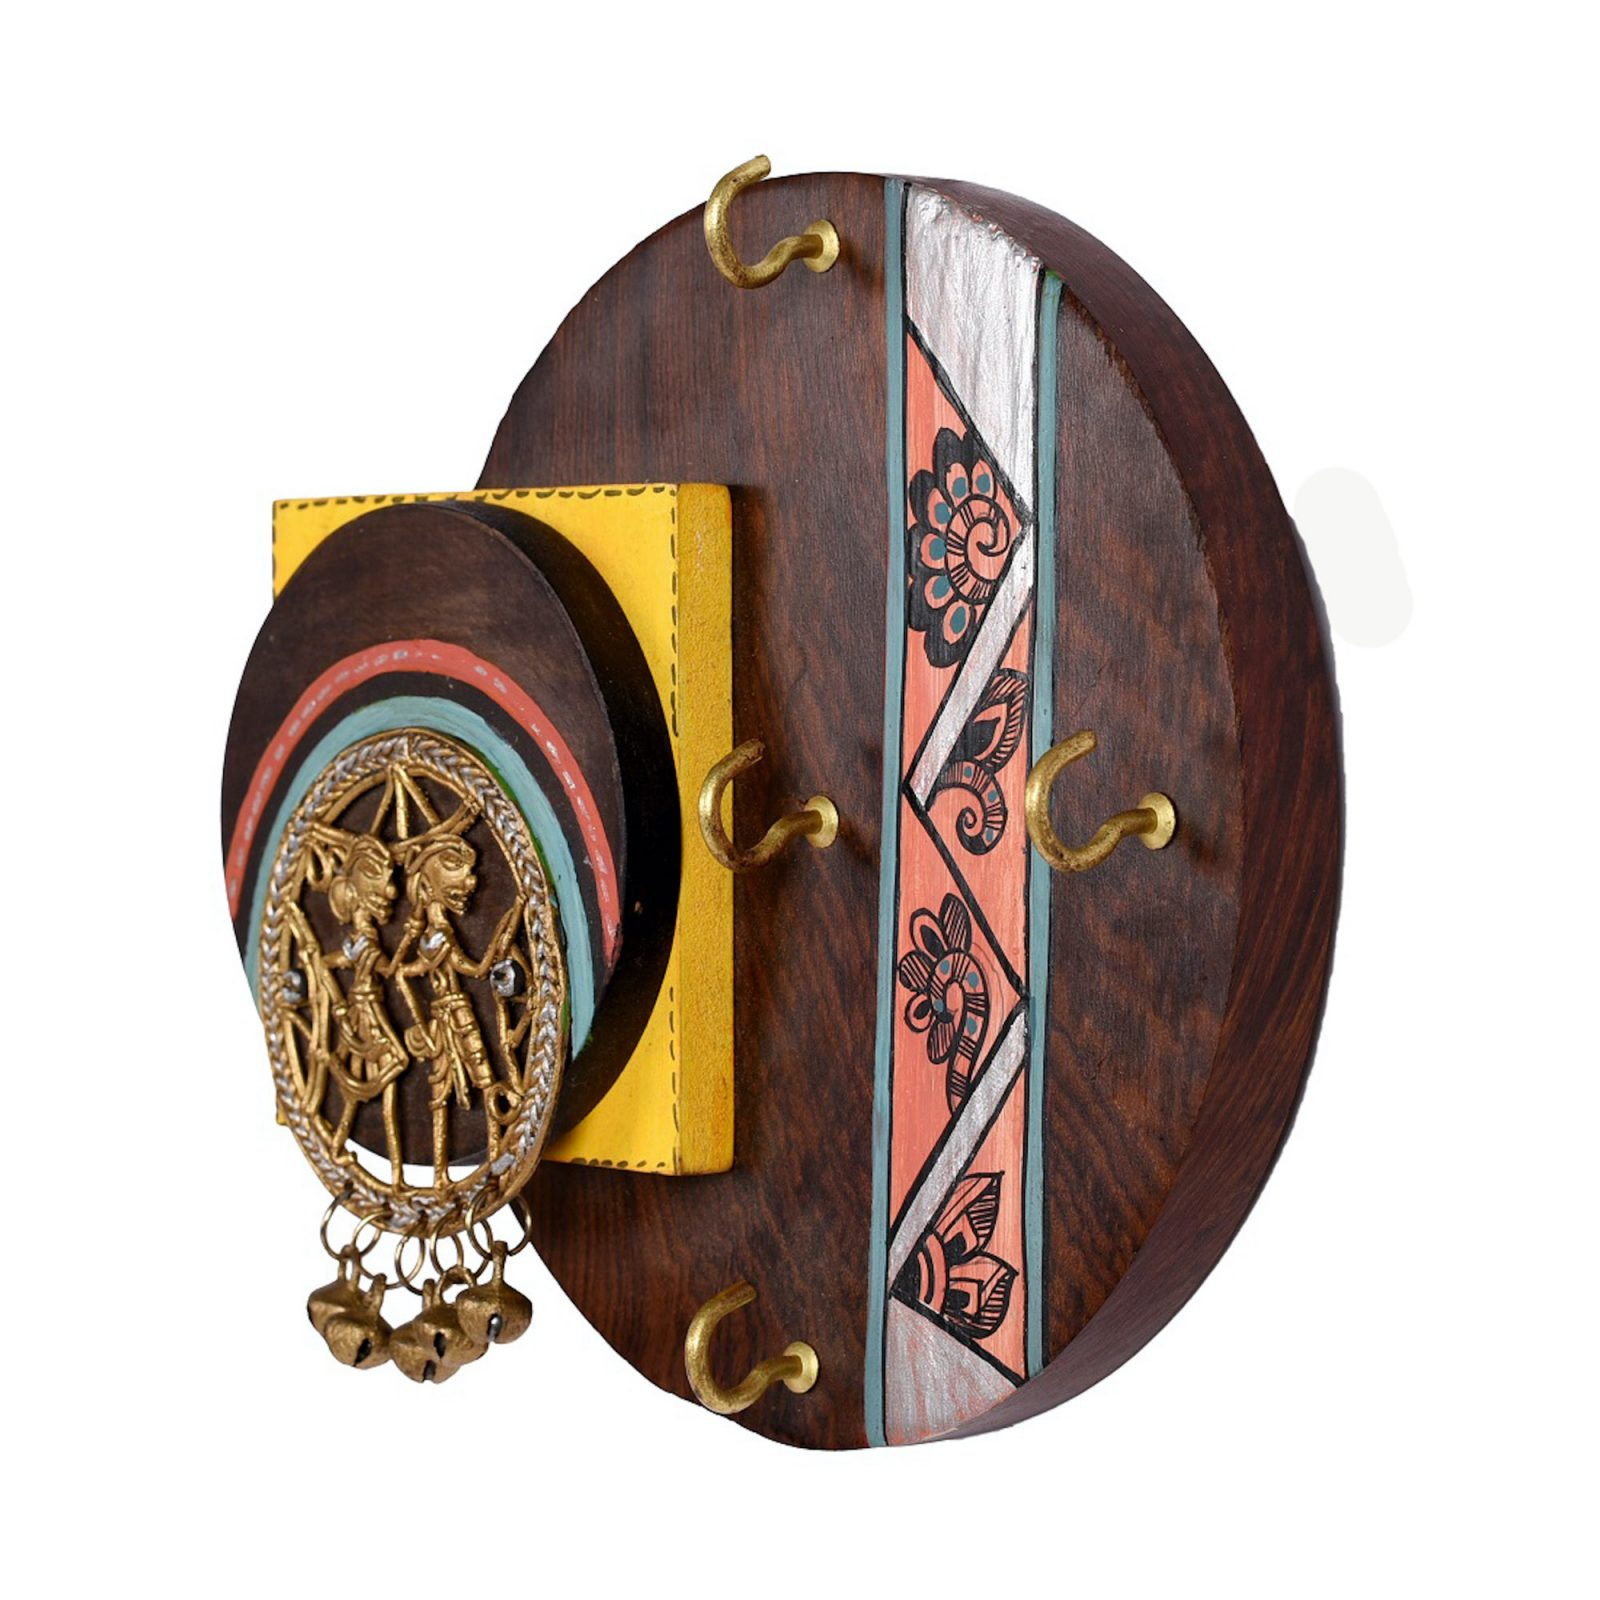 Key Holder Designs for Wall Mount